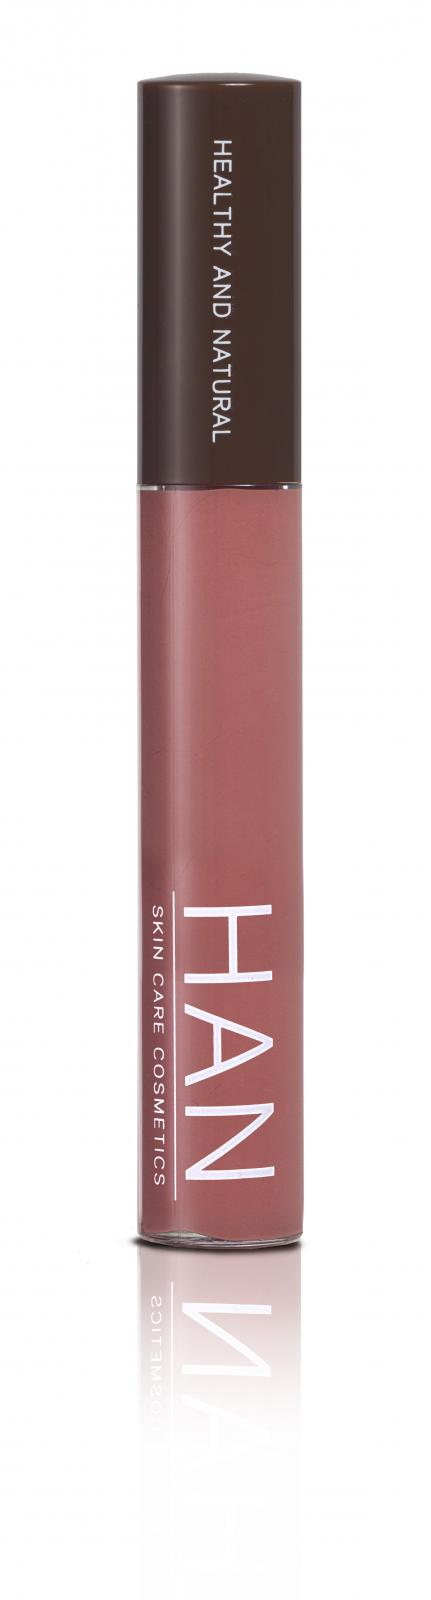 HAN Skin Care Cosmetics Lip Gloss - Nude Rose